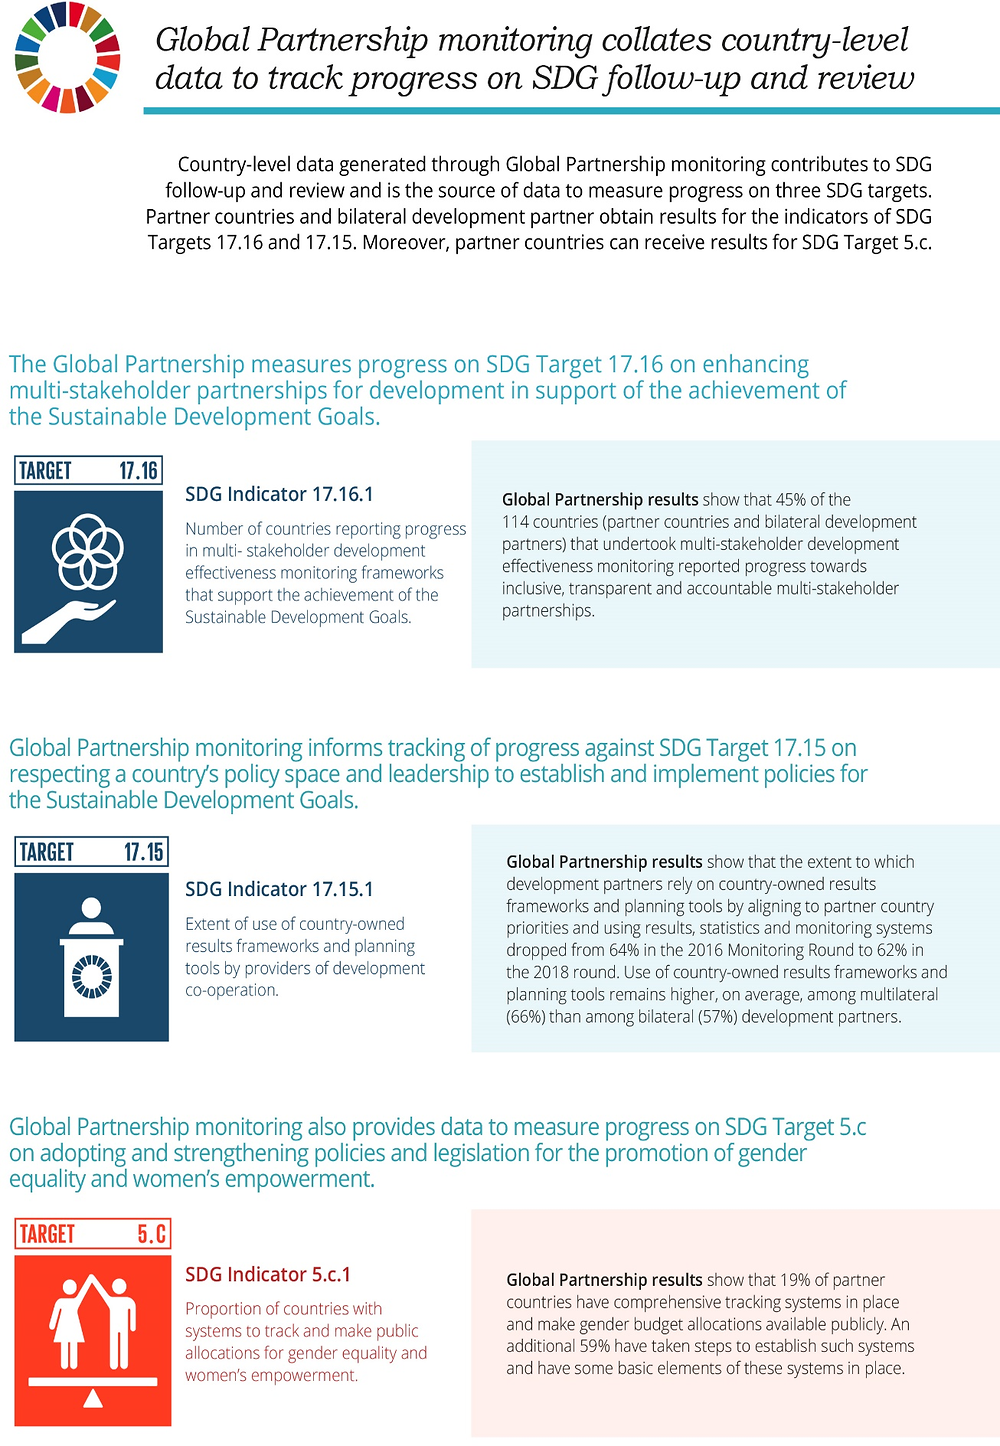 Infographic 1.1. Global Partnership monitoring and the SDGs